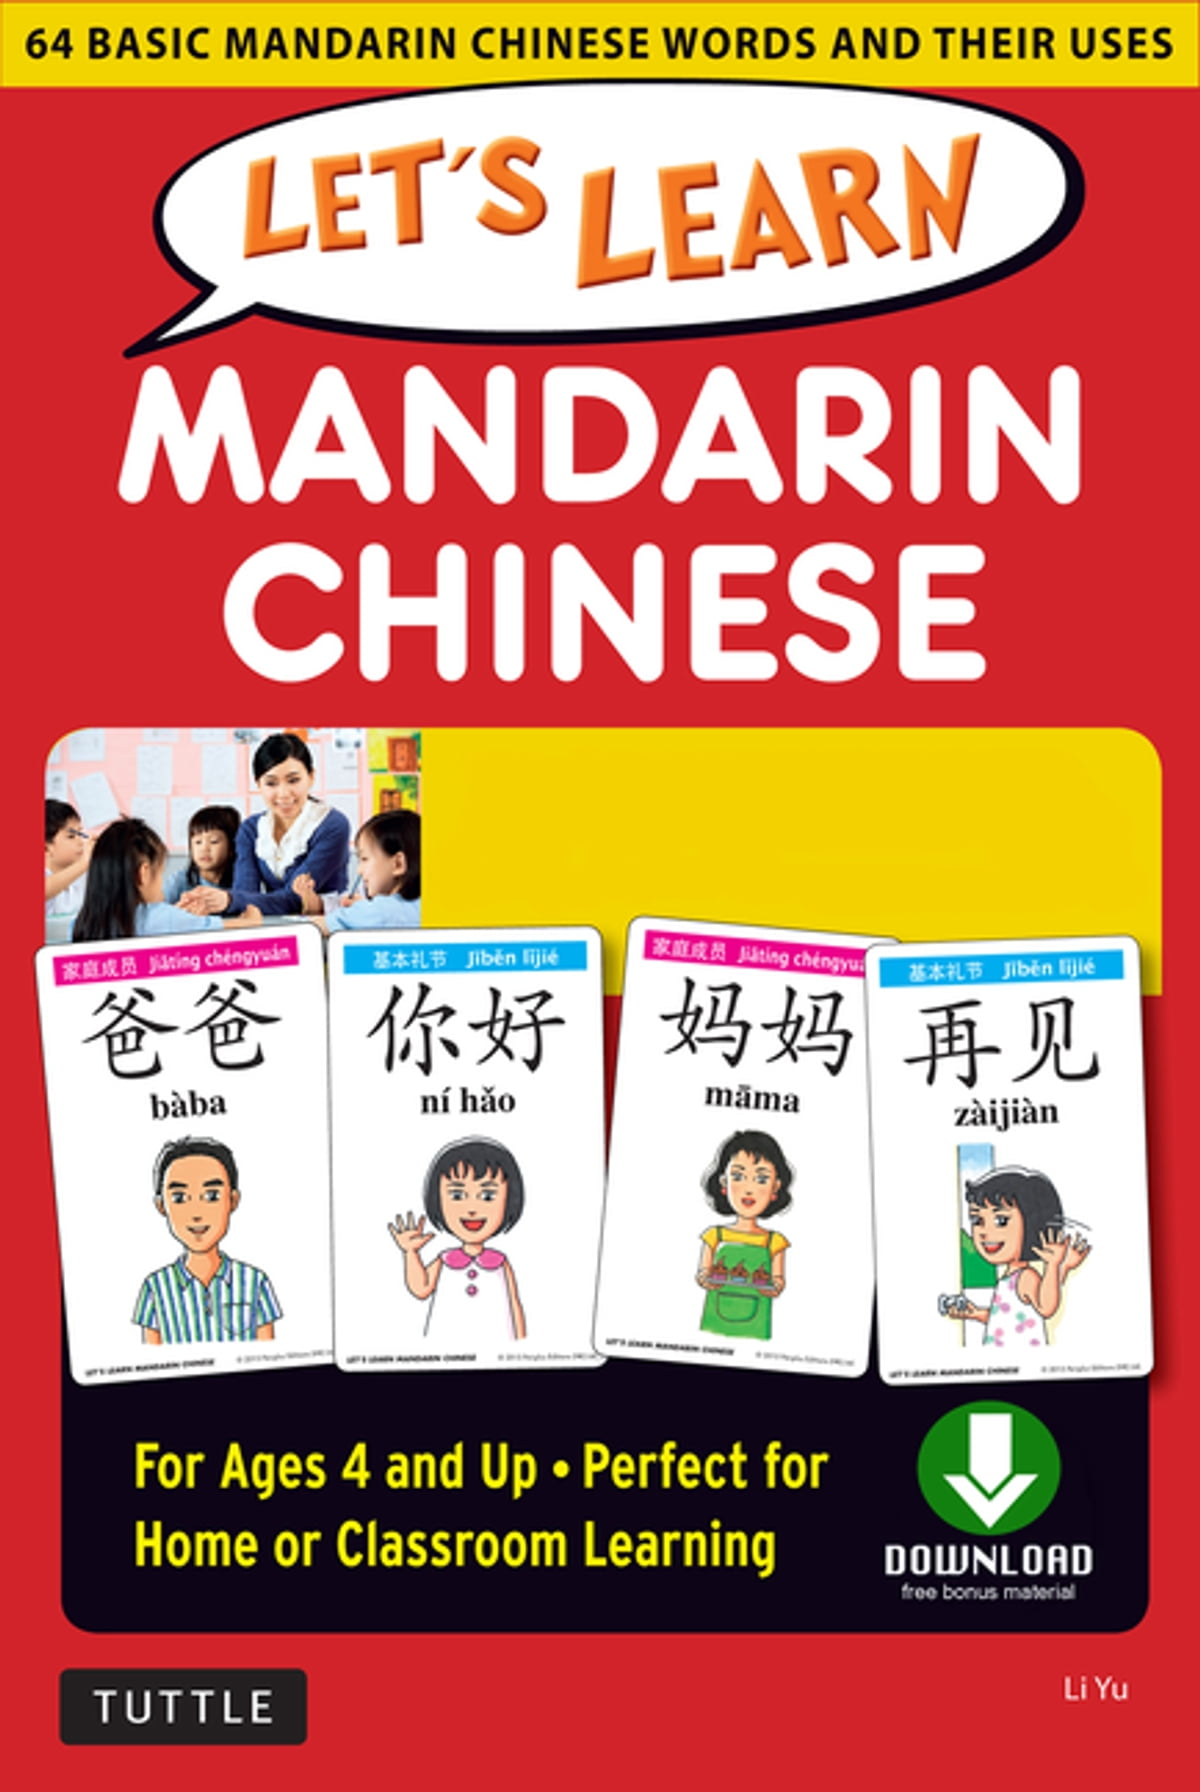 Download learning chinese the easy way: read understand the symbols….